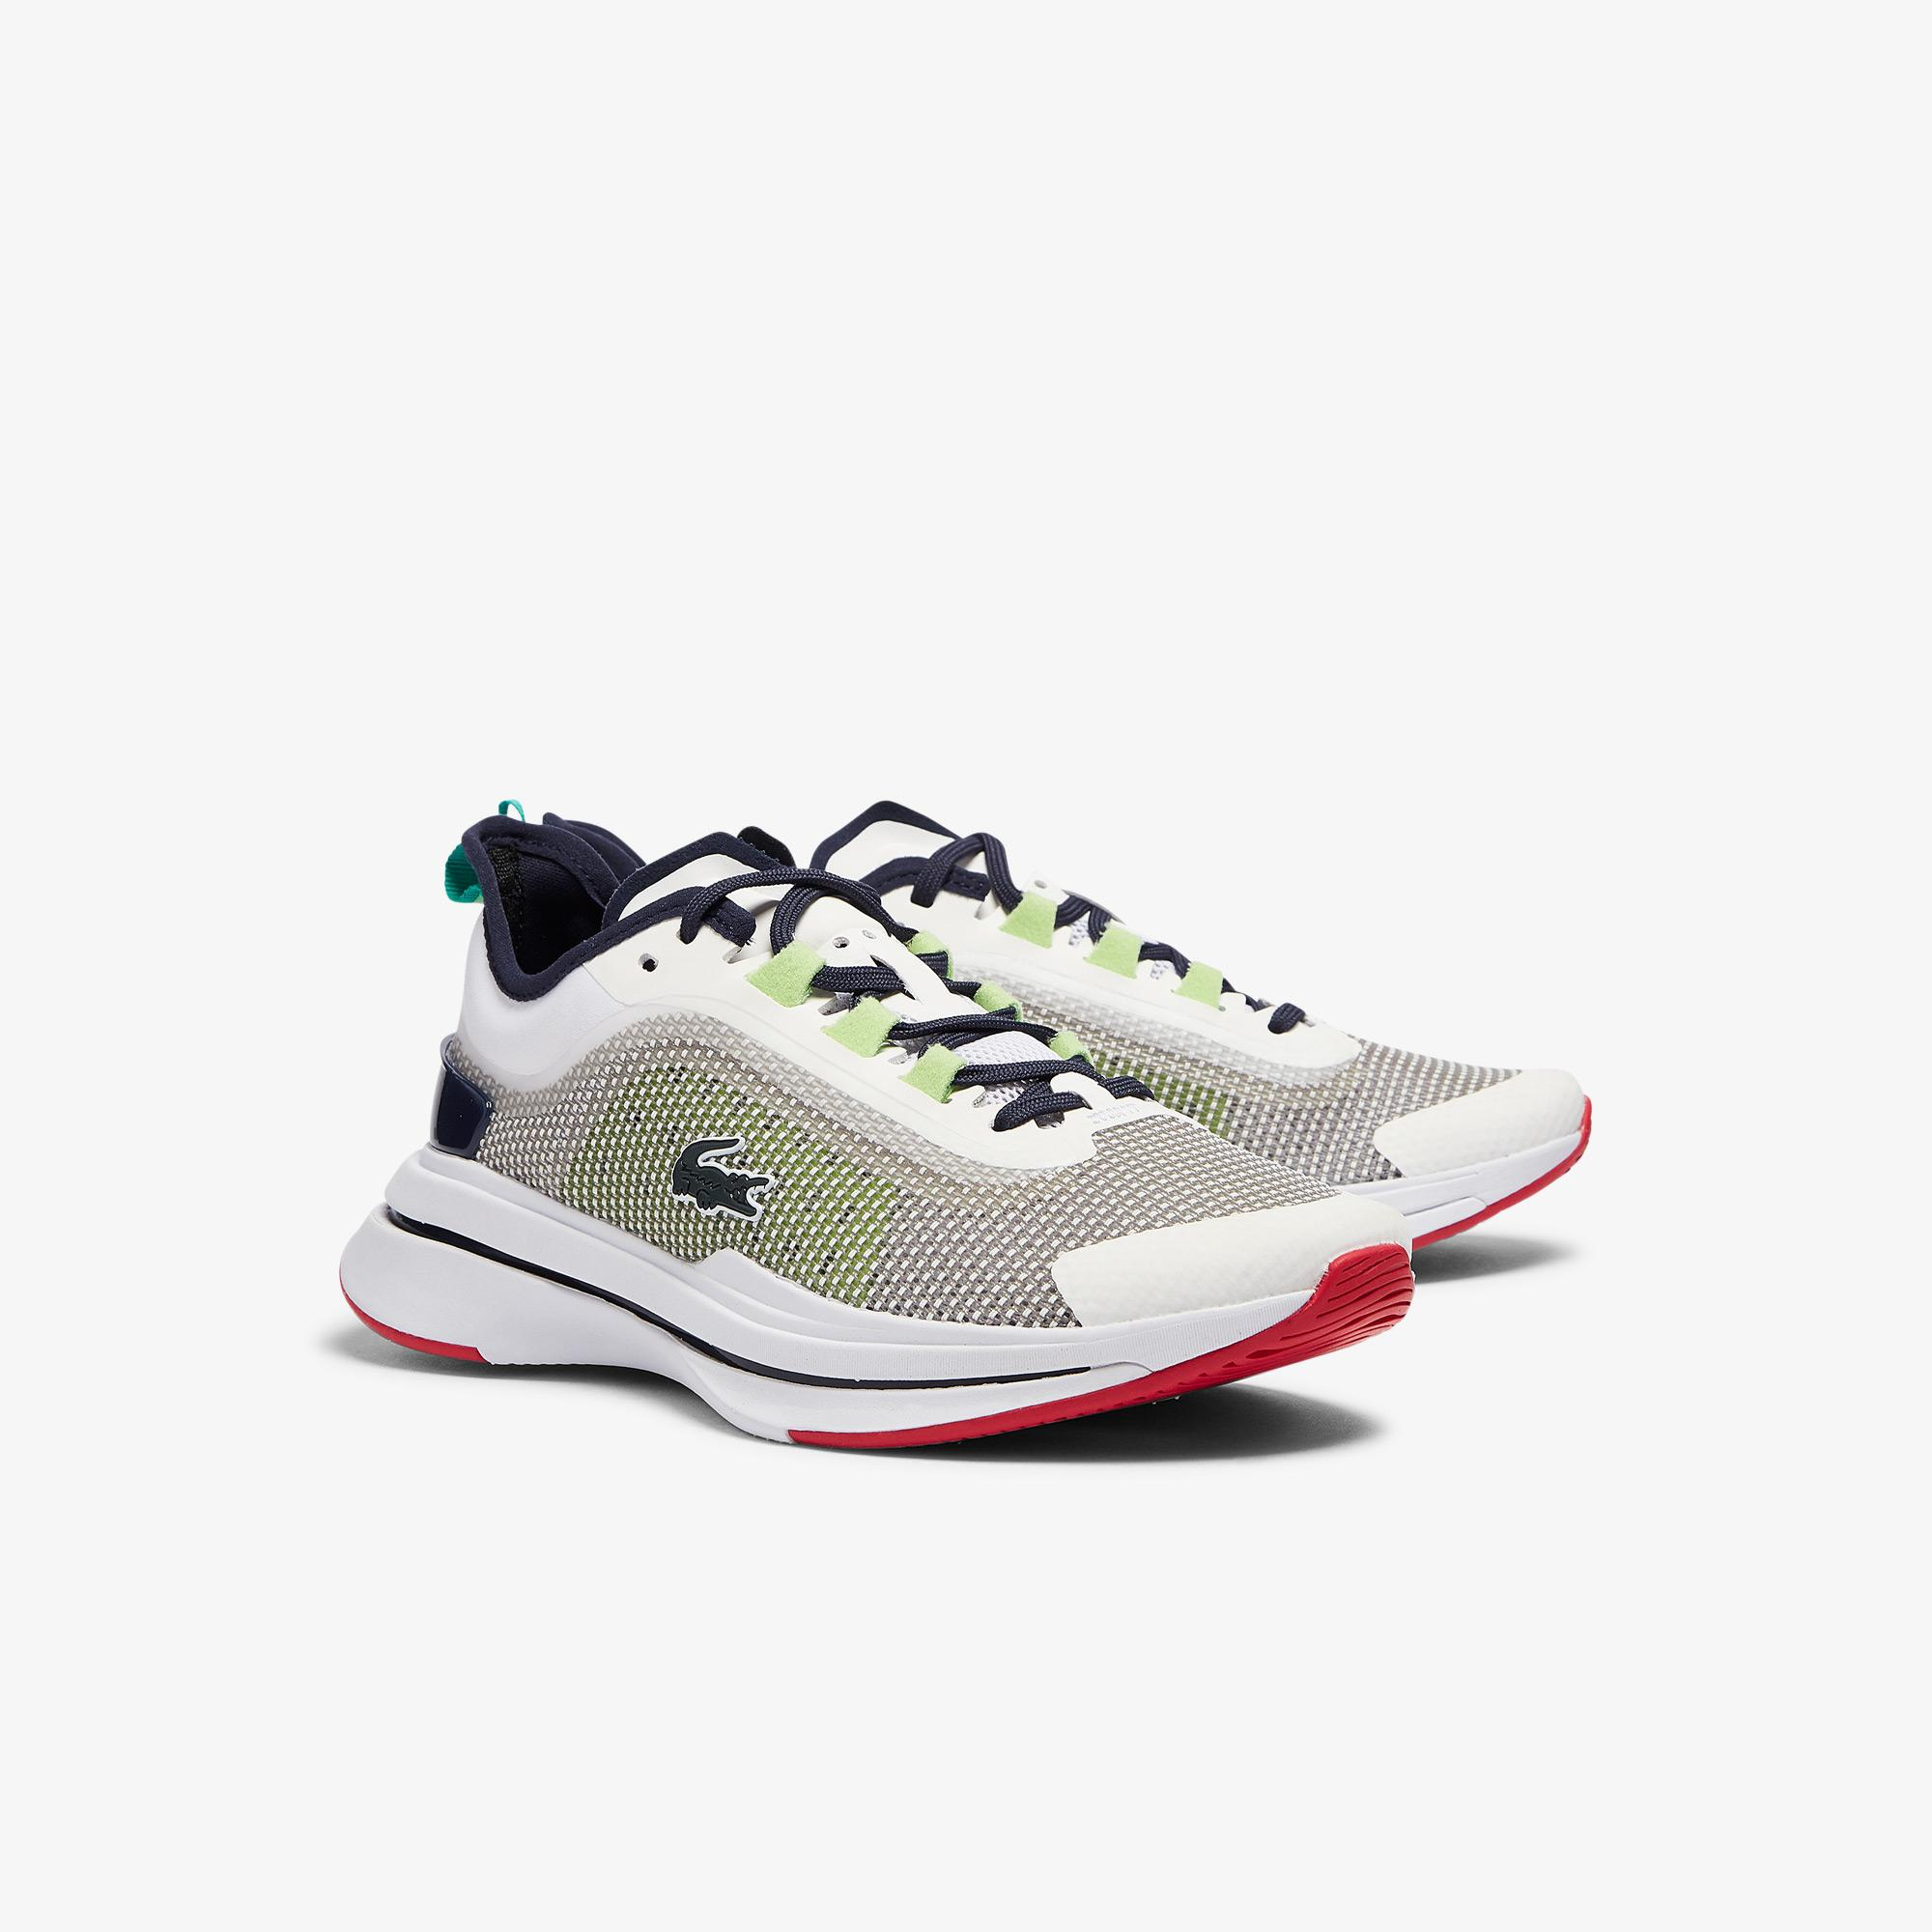 Lacoste Women's Run Spin Ultra Textile Trainers